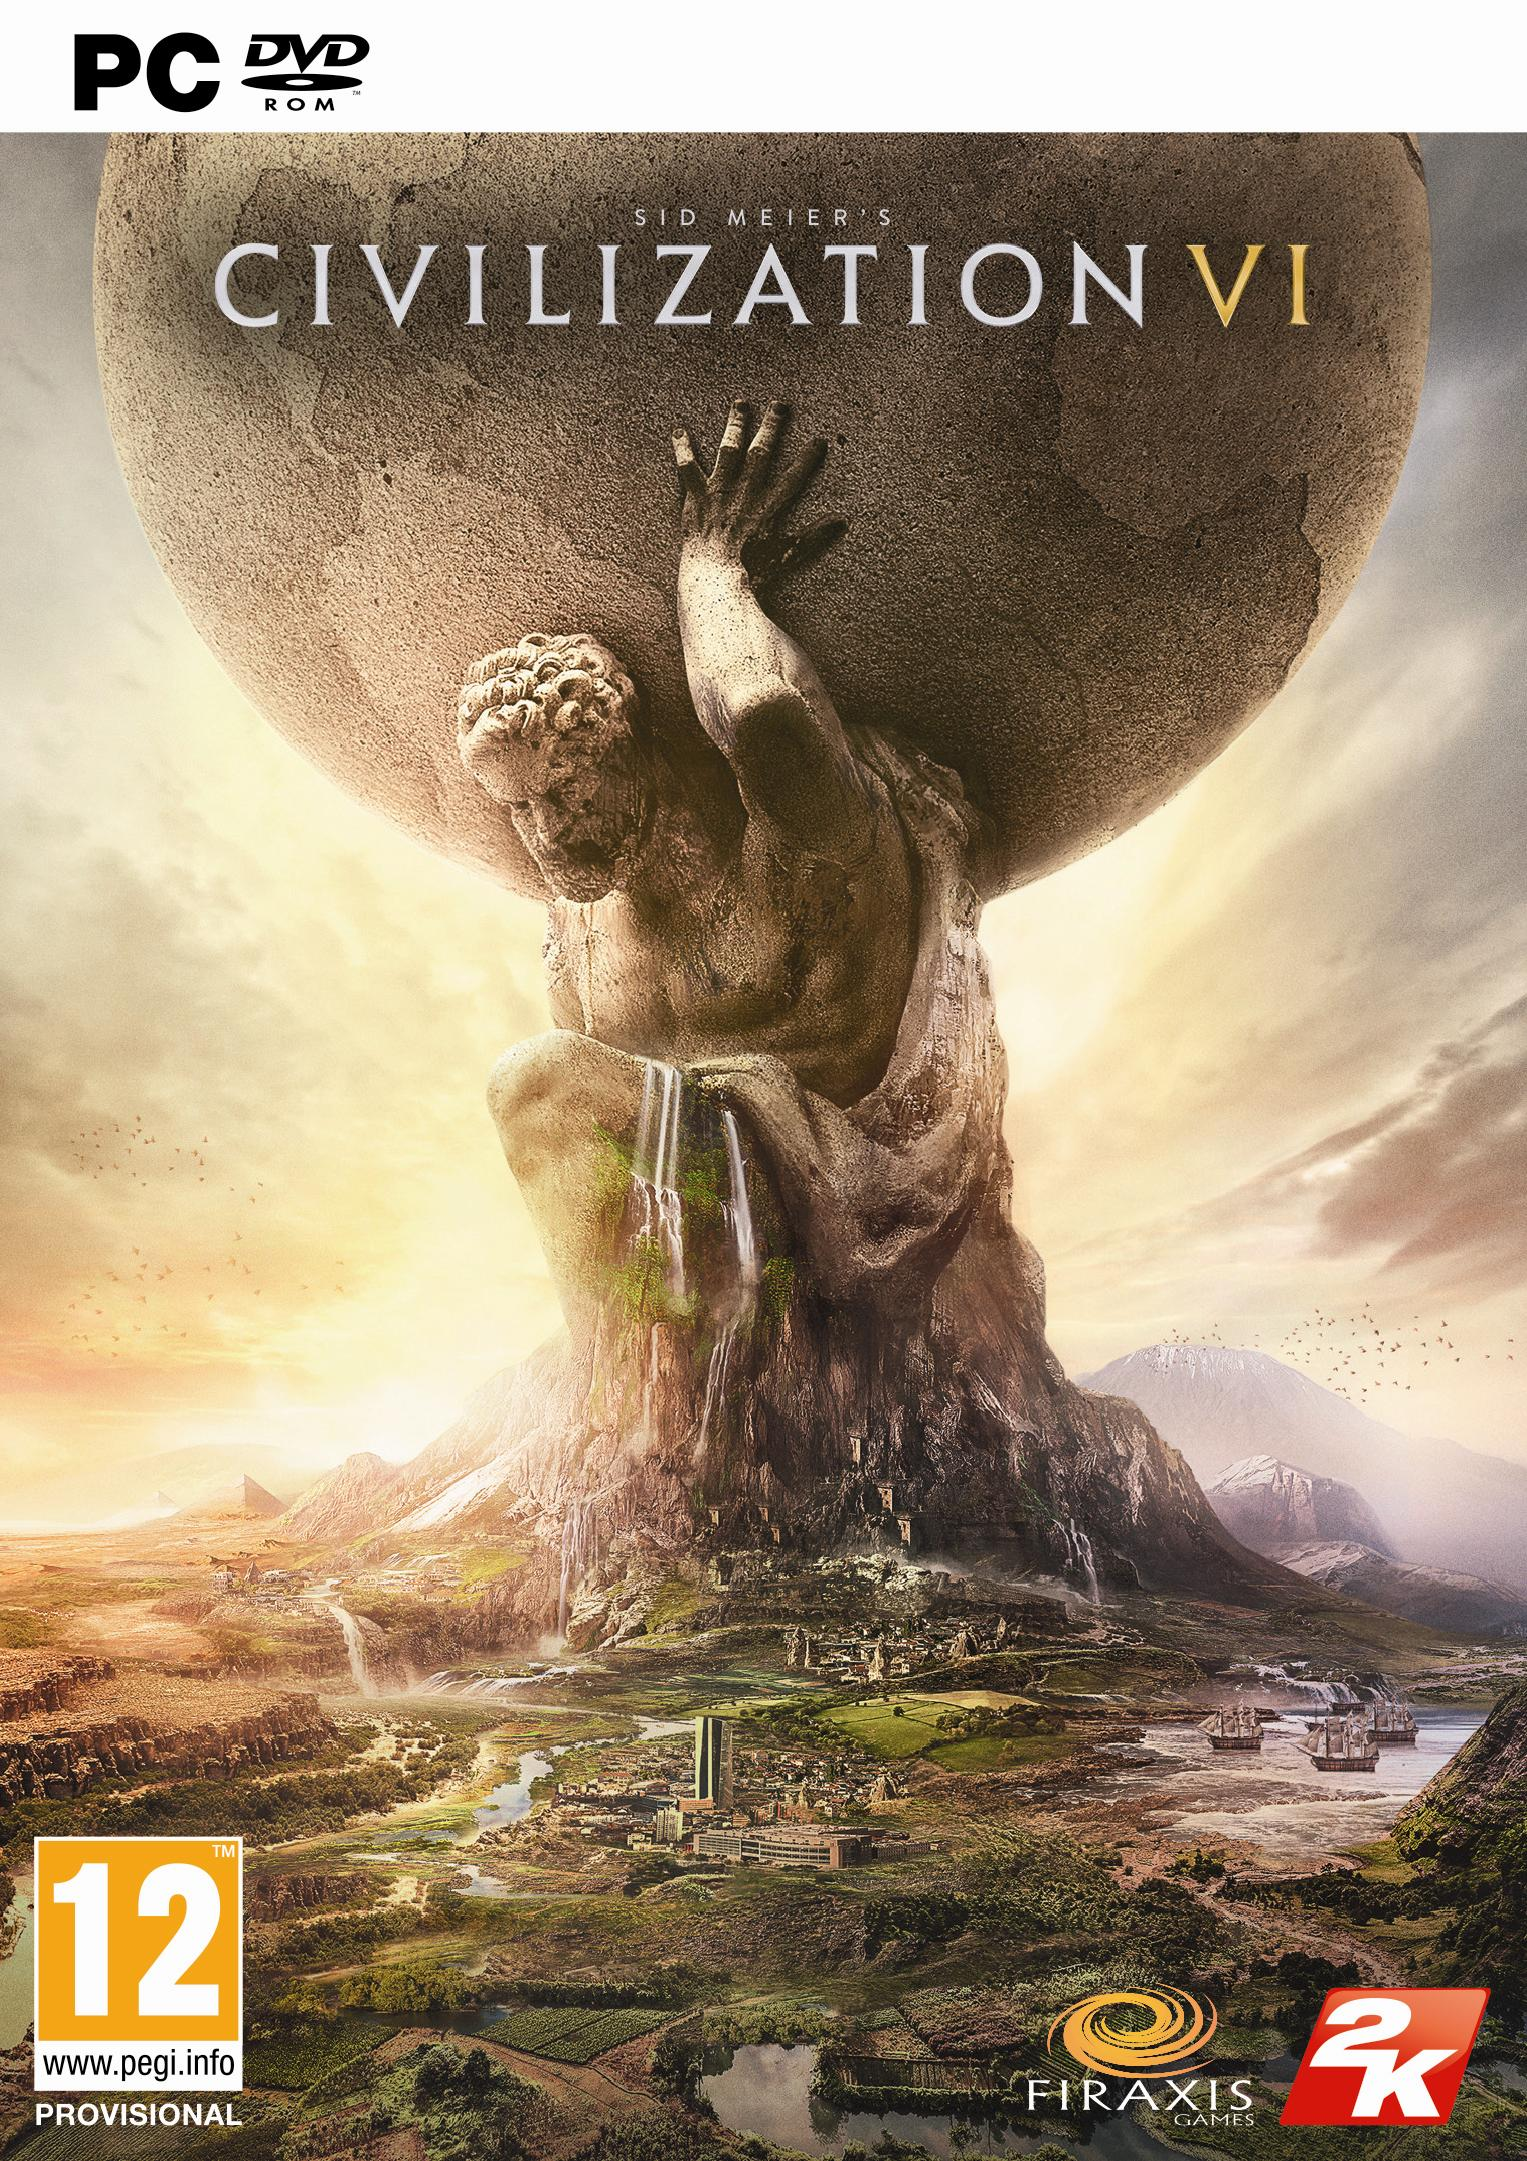 Box art - Sid Meier's Civilization VI